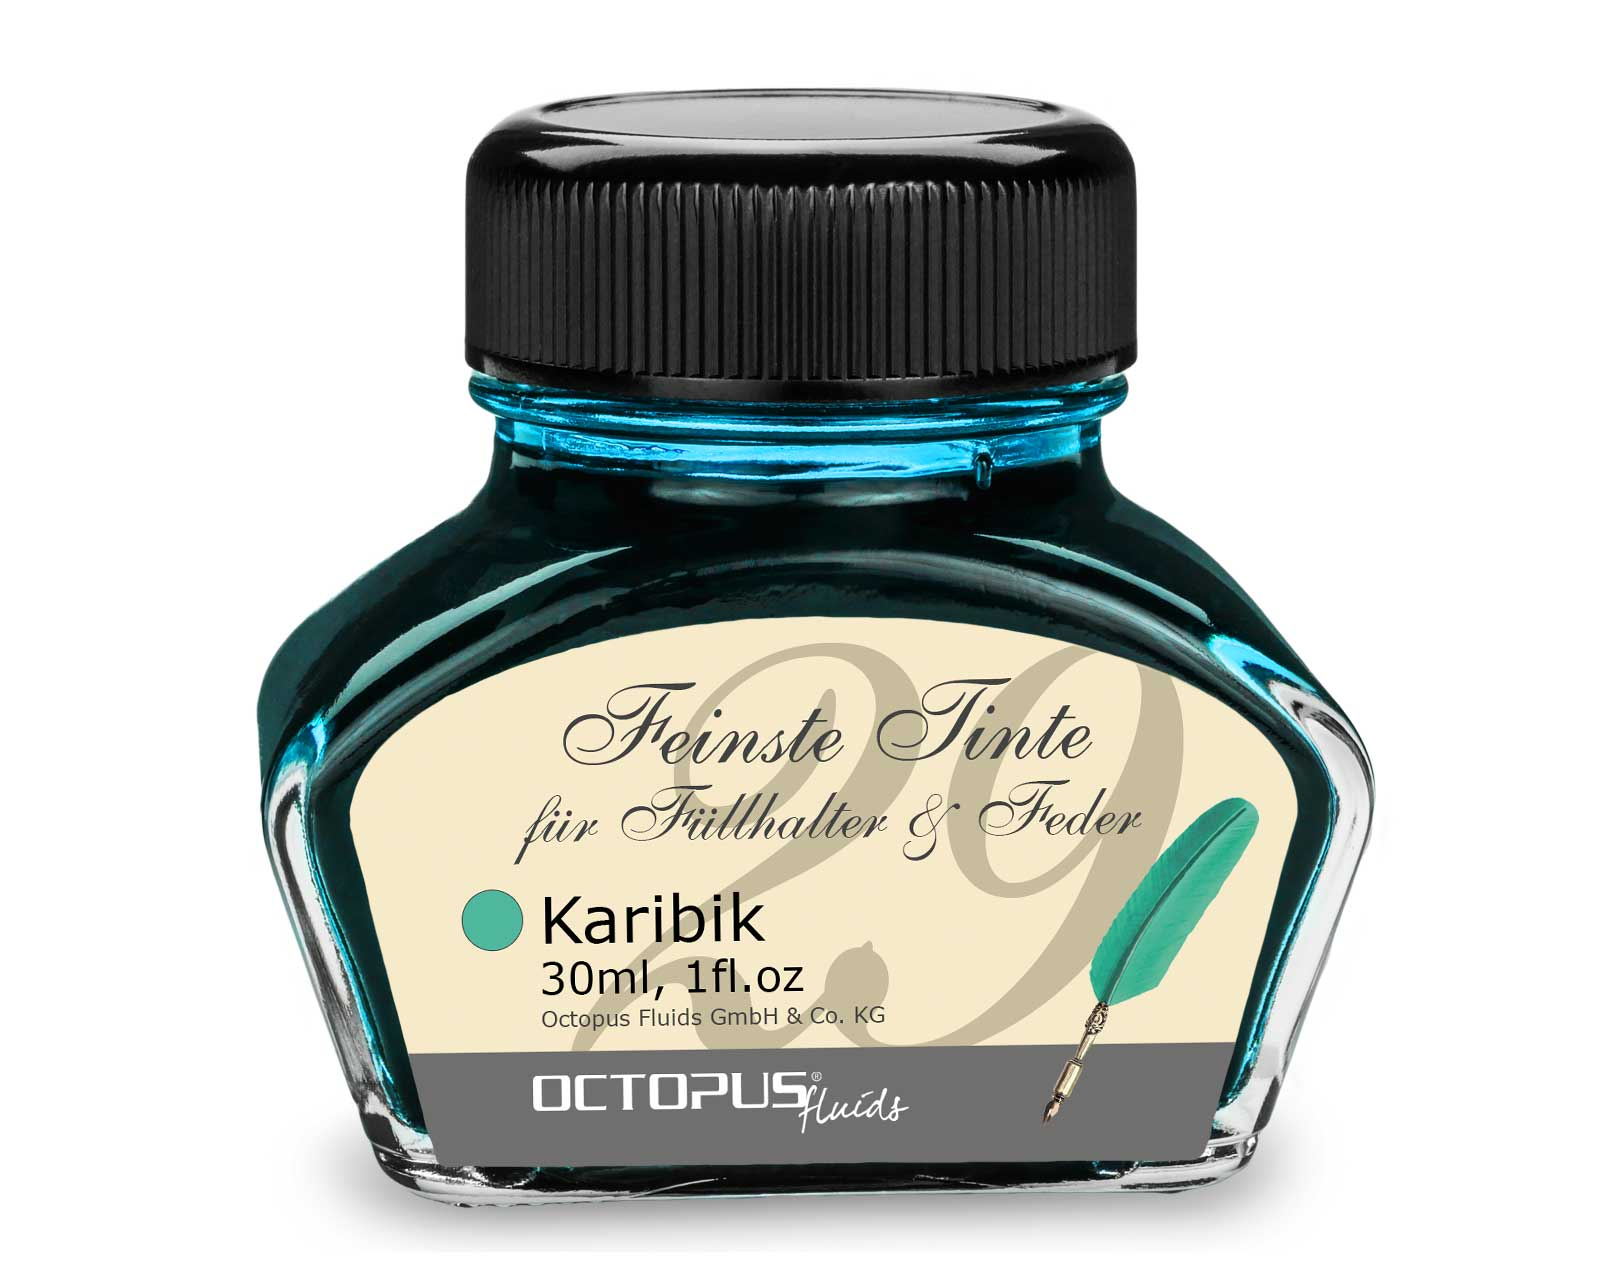 Fountain pen ink, writing ink for fountain pen, fountain pen ink Caribbean